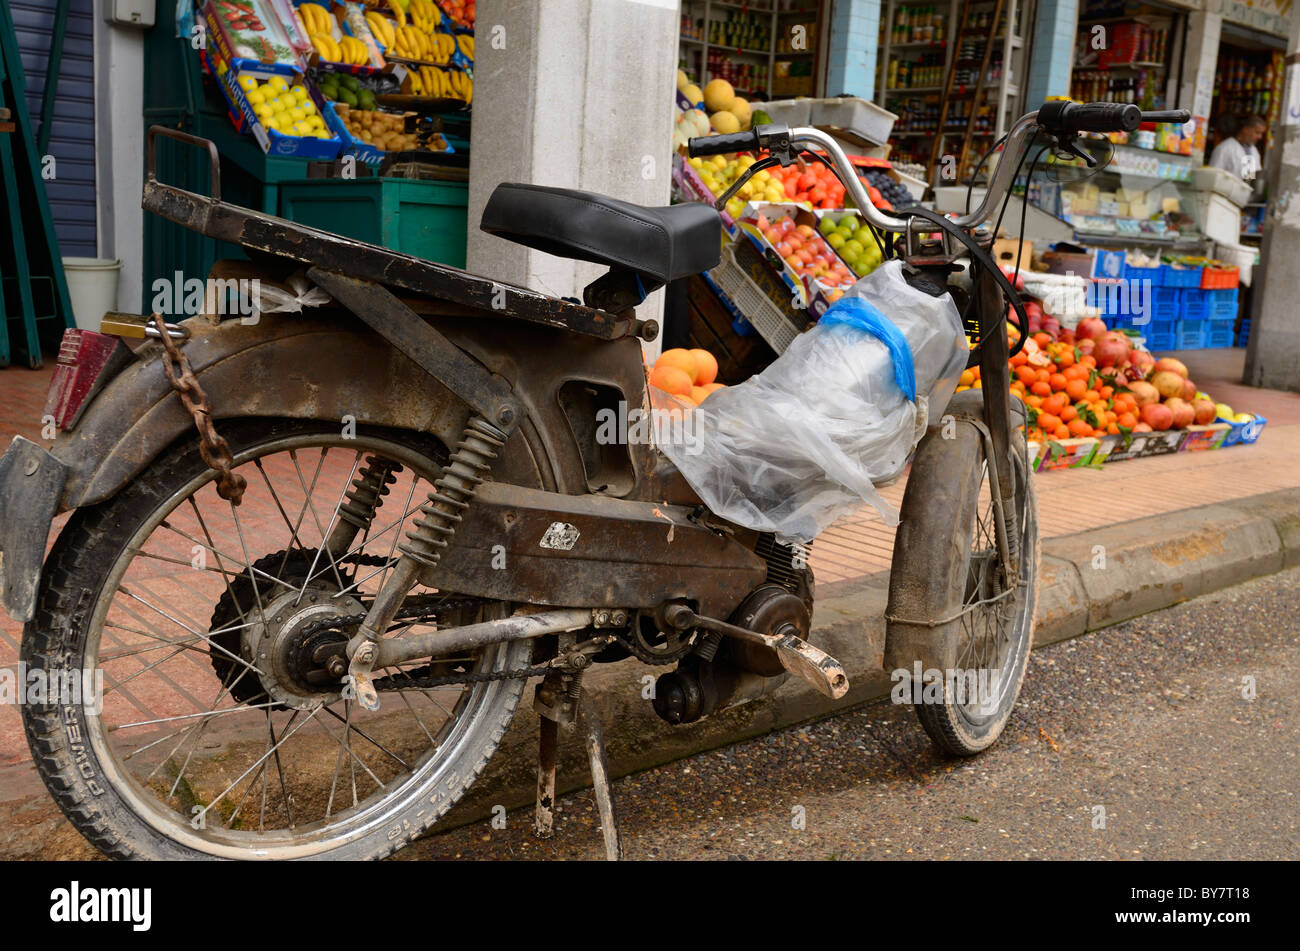 Old motorbike parked at grocery store in the outdoor Casablanca new market Morocco Stock Photo